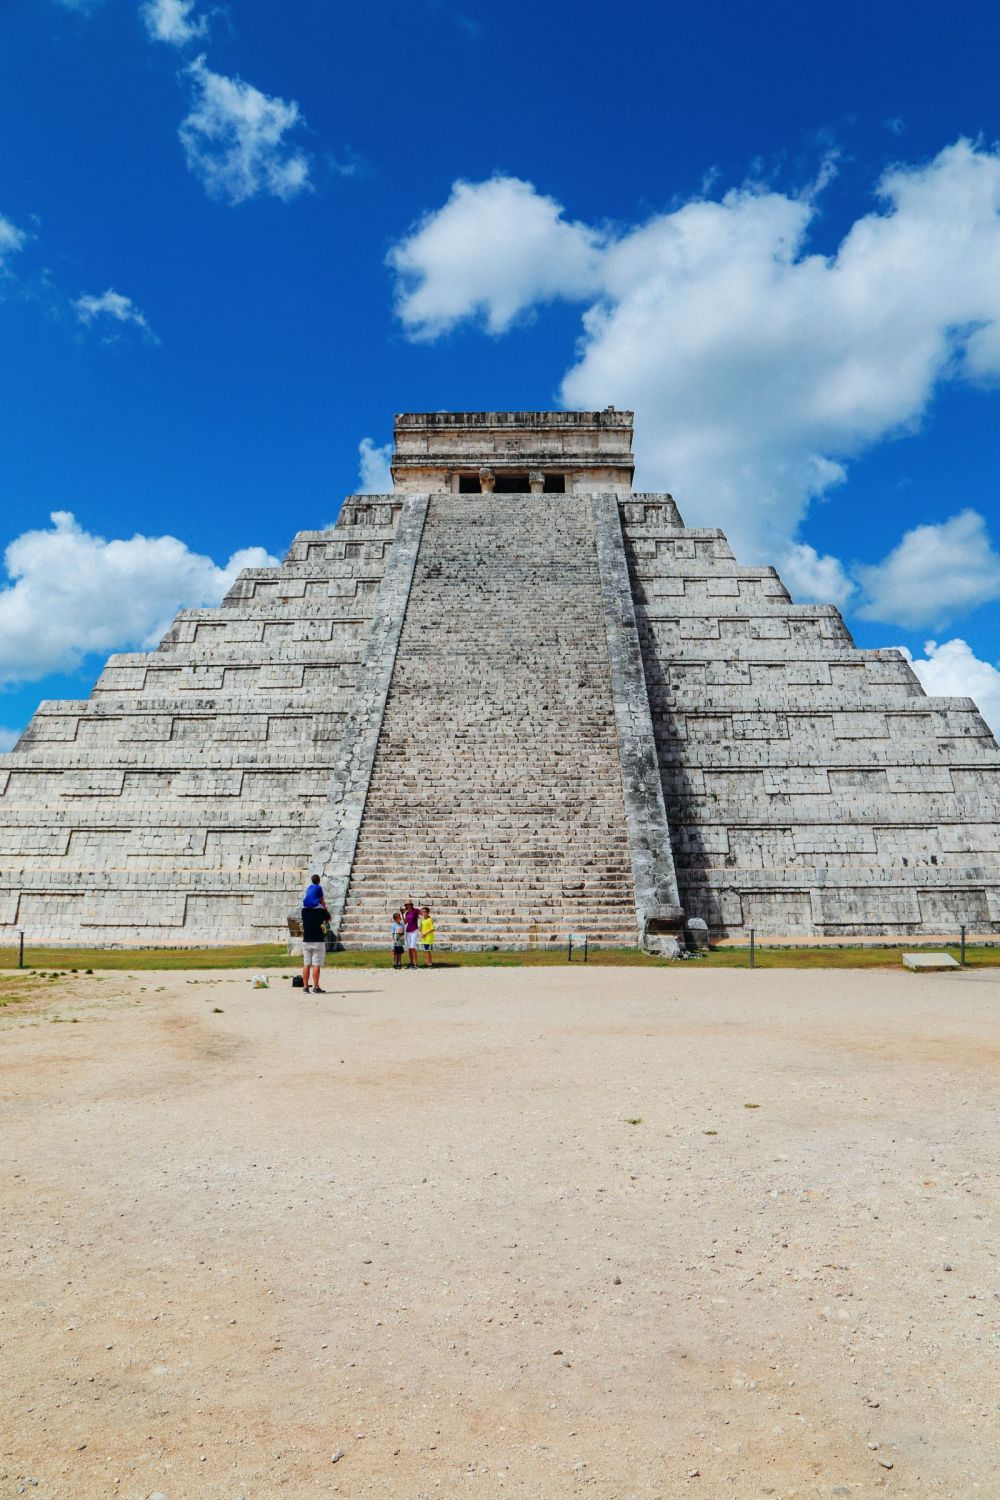 9 Things To Do When You Visit Cancun In Mexico That Don't Involve Partying (10)